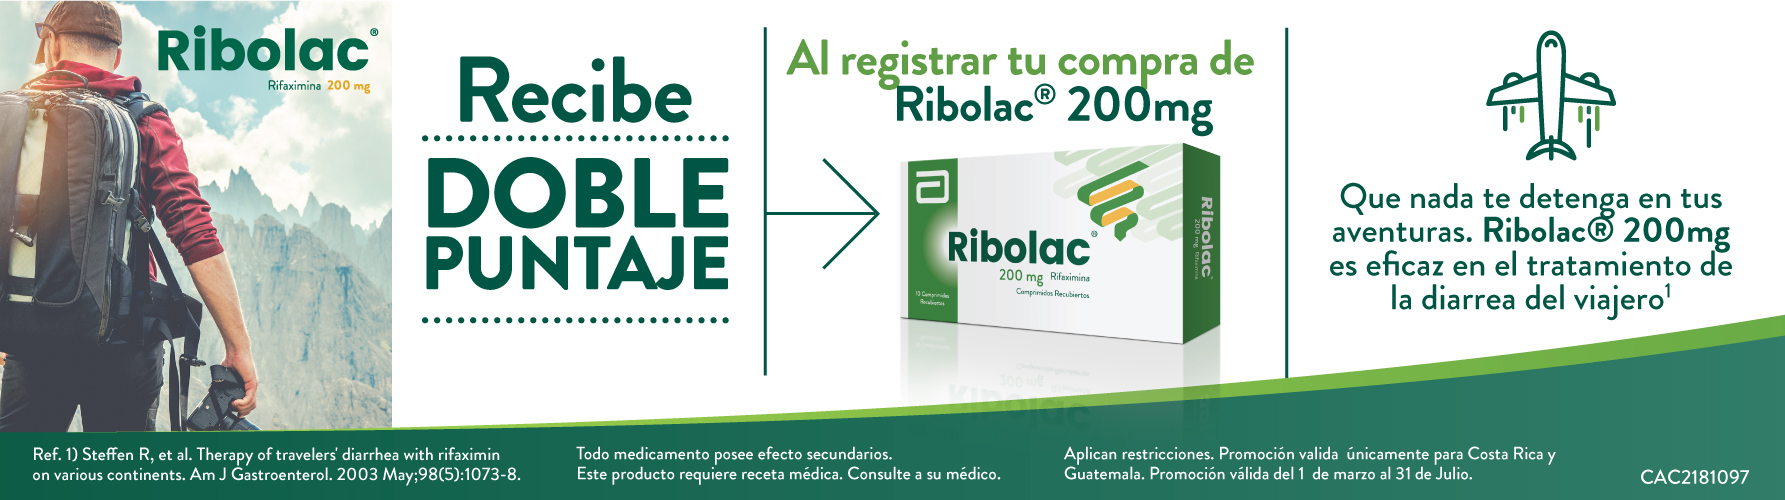 BANNER-RIBOLAC